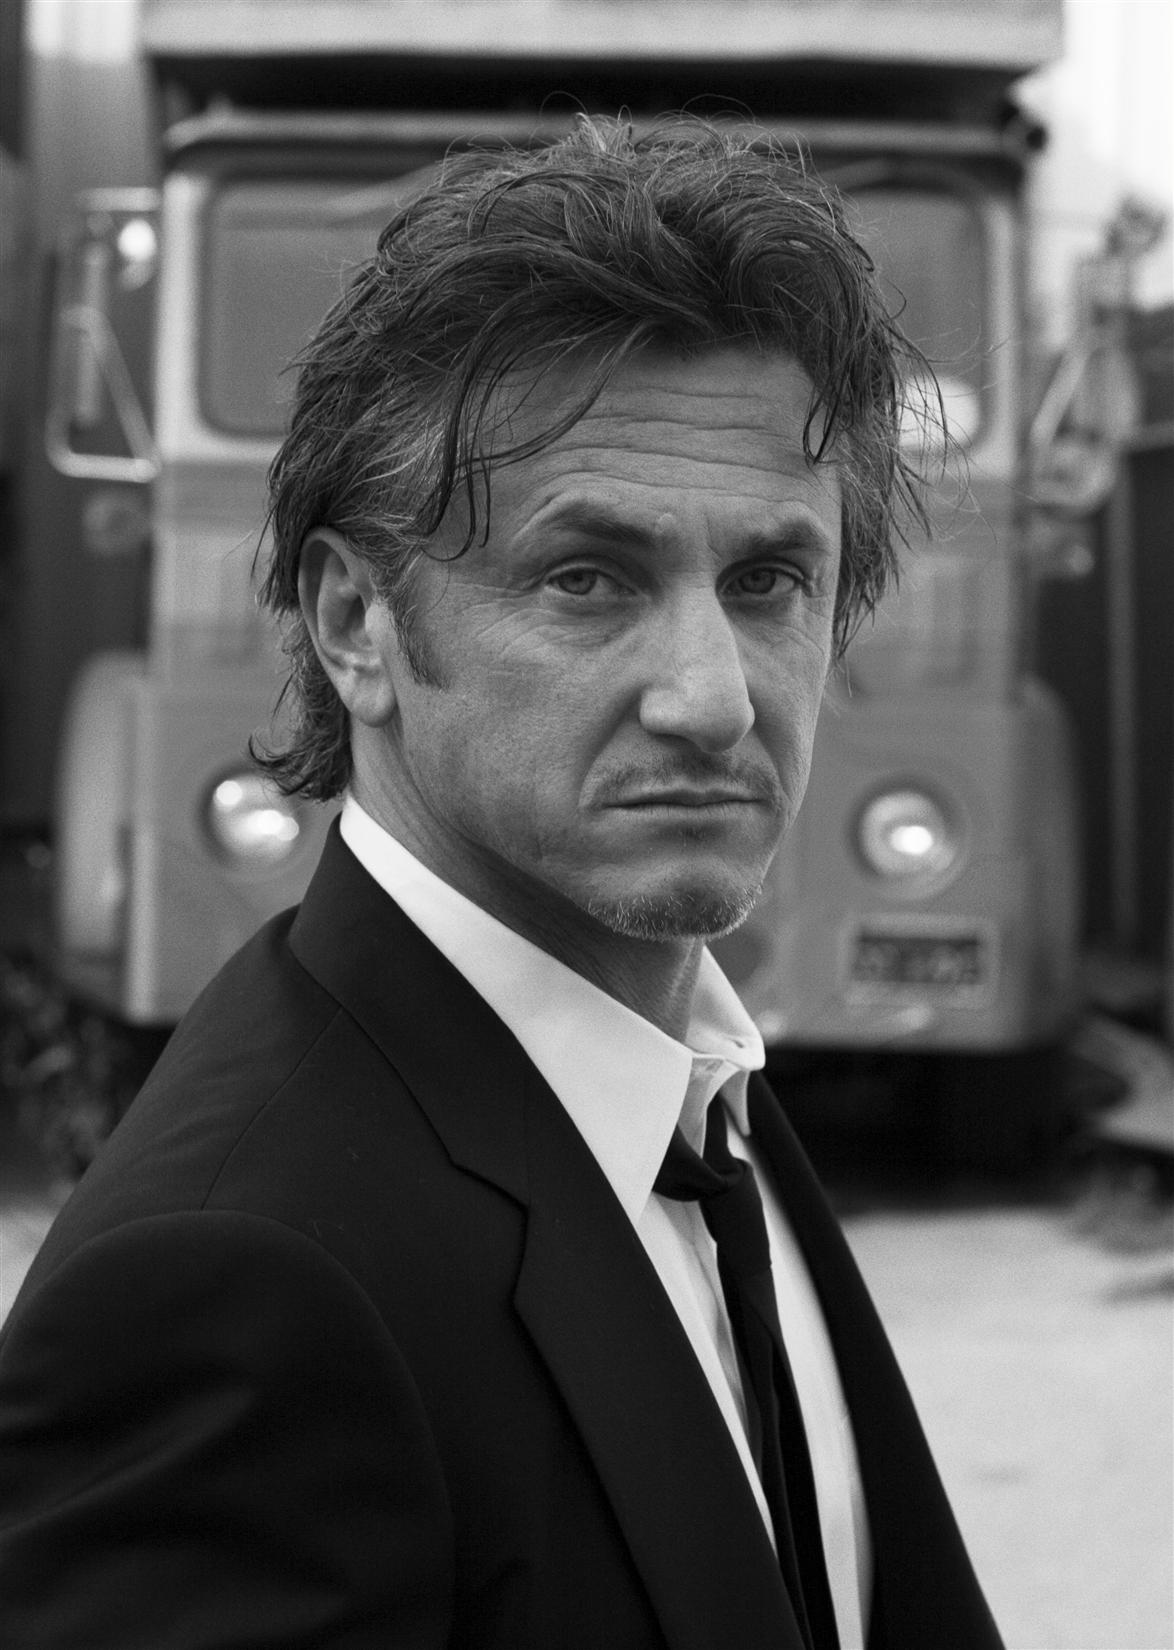 Sean Penn - Wallpaper Actress